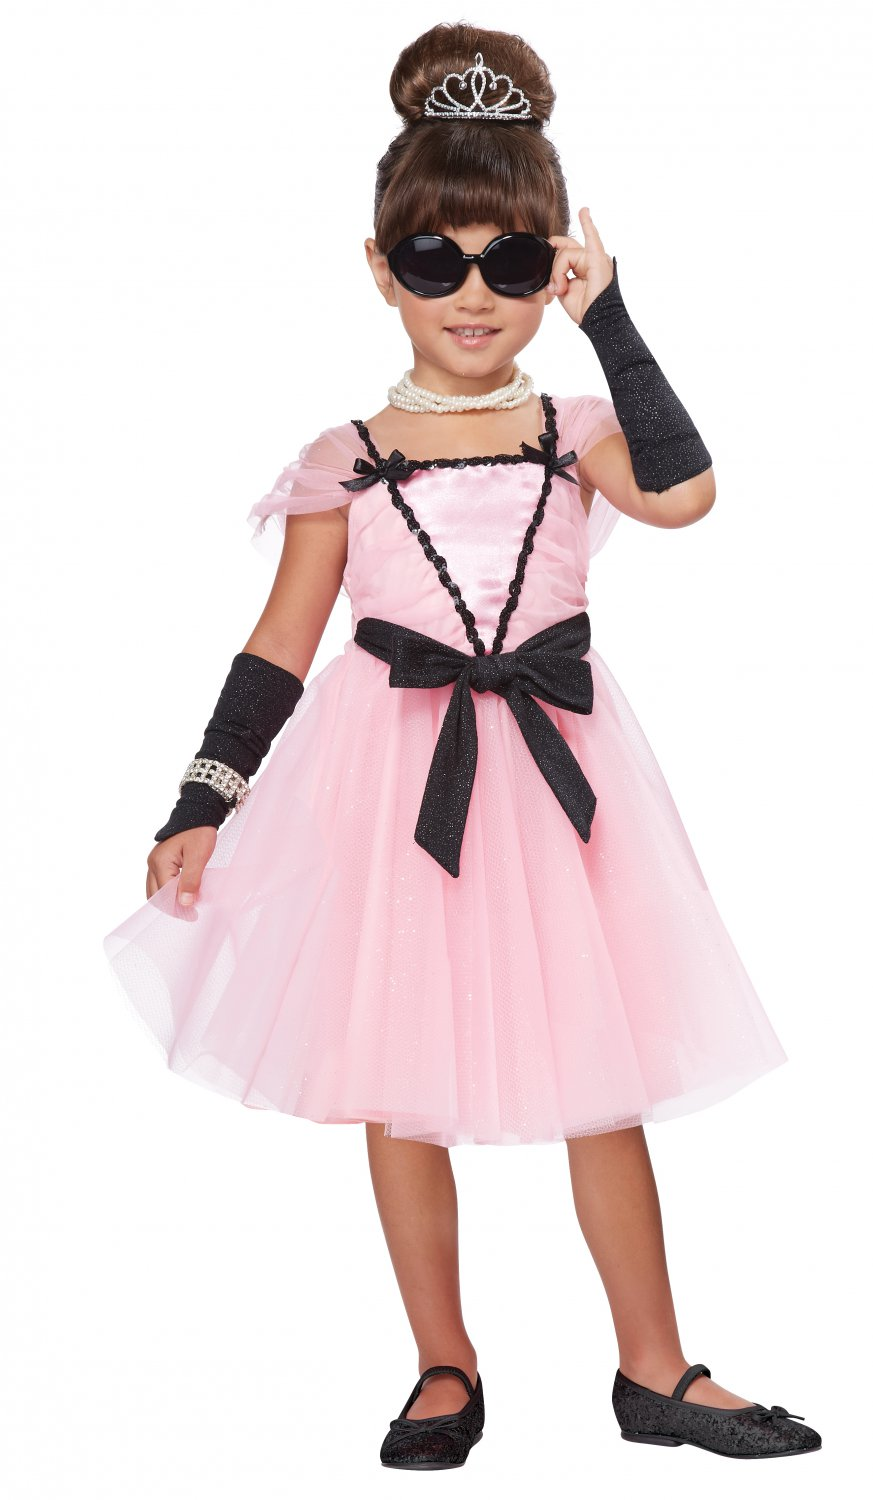 Hollywood Movie Star Toddler Costume Size: Medium #00157